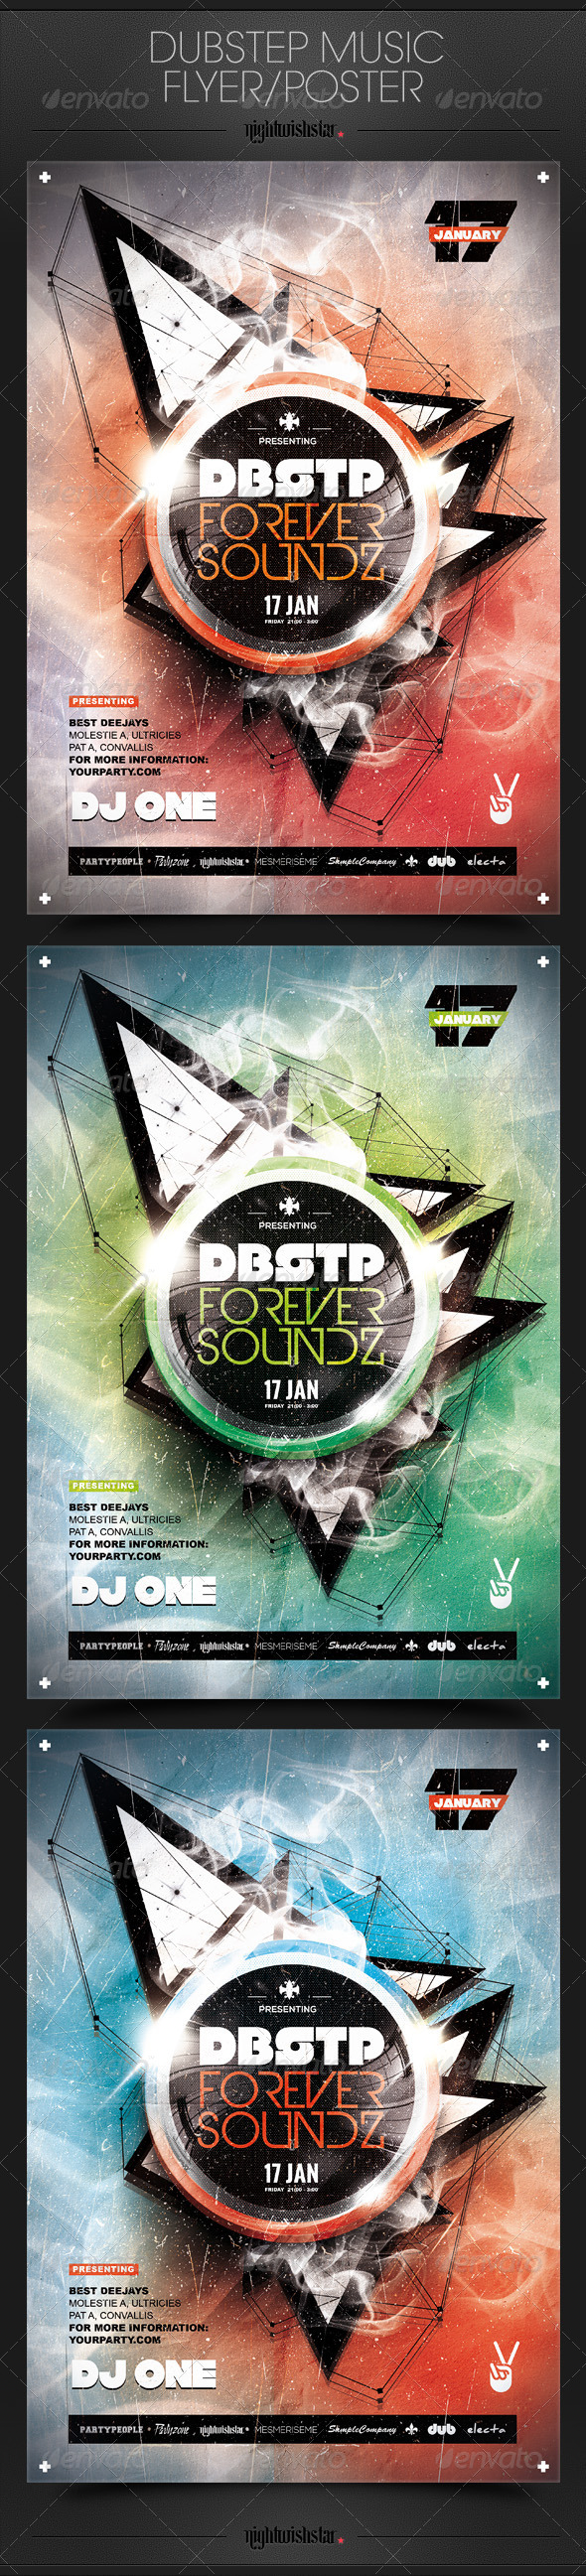 GraphicRiver Dubstep Music Party Poster Flyer 6757878